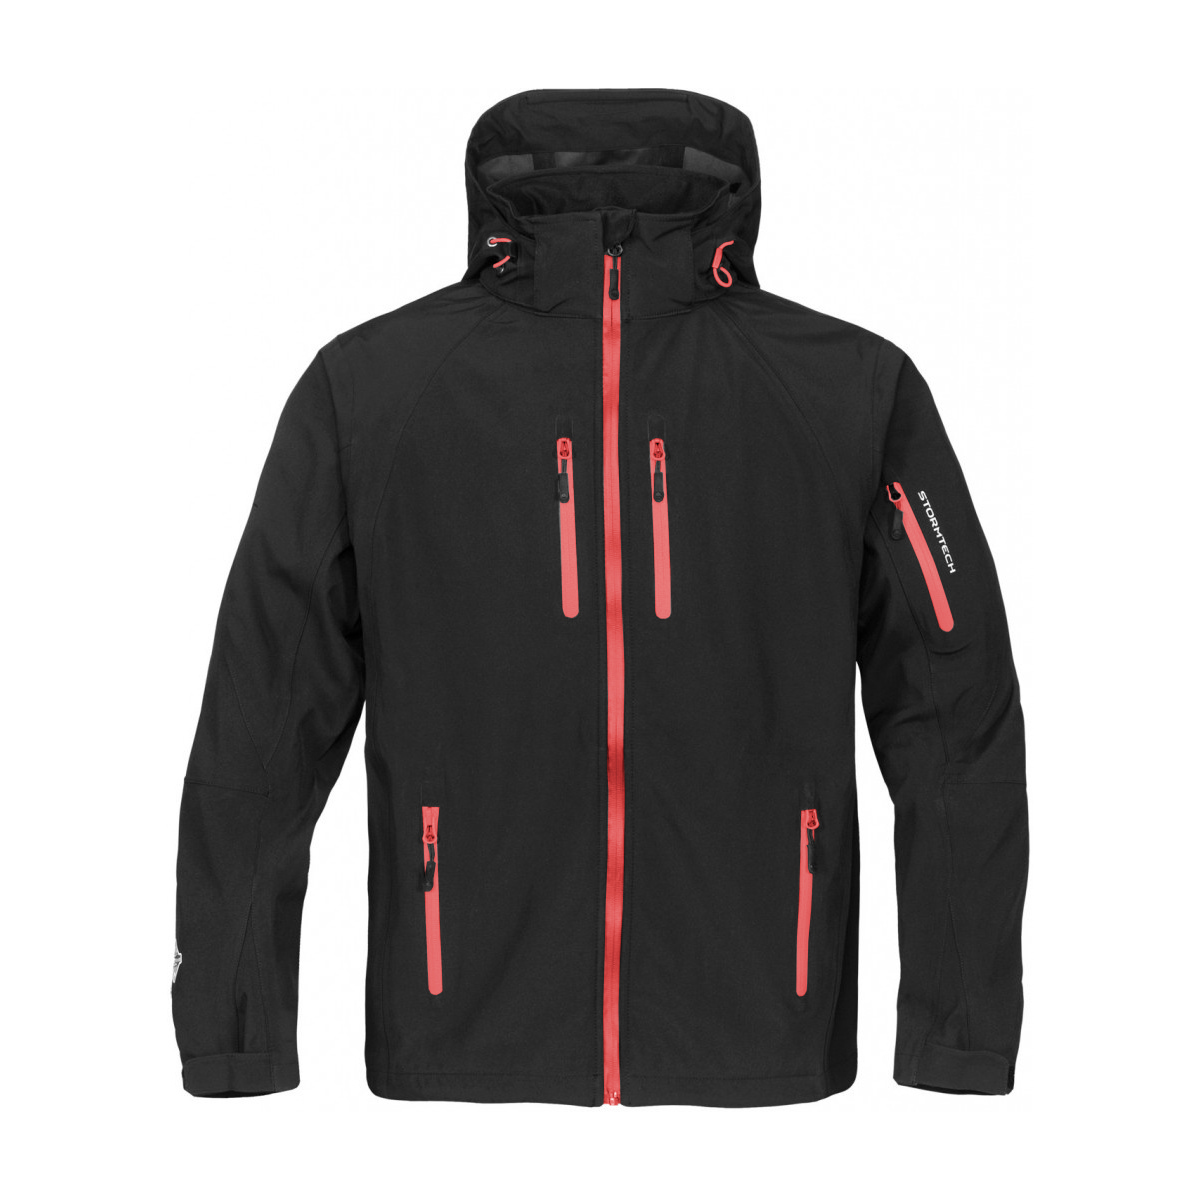 Stormtech Mens Expedition Softshell Breathable Waterproof Jacket (2XL) (Black/Red)